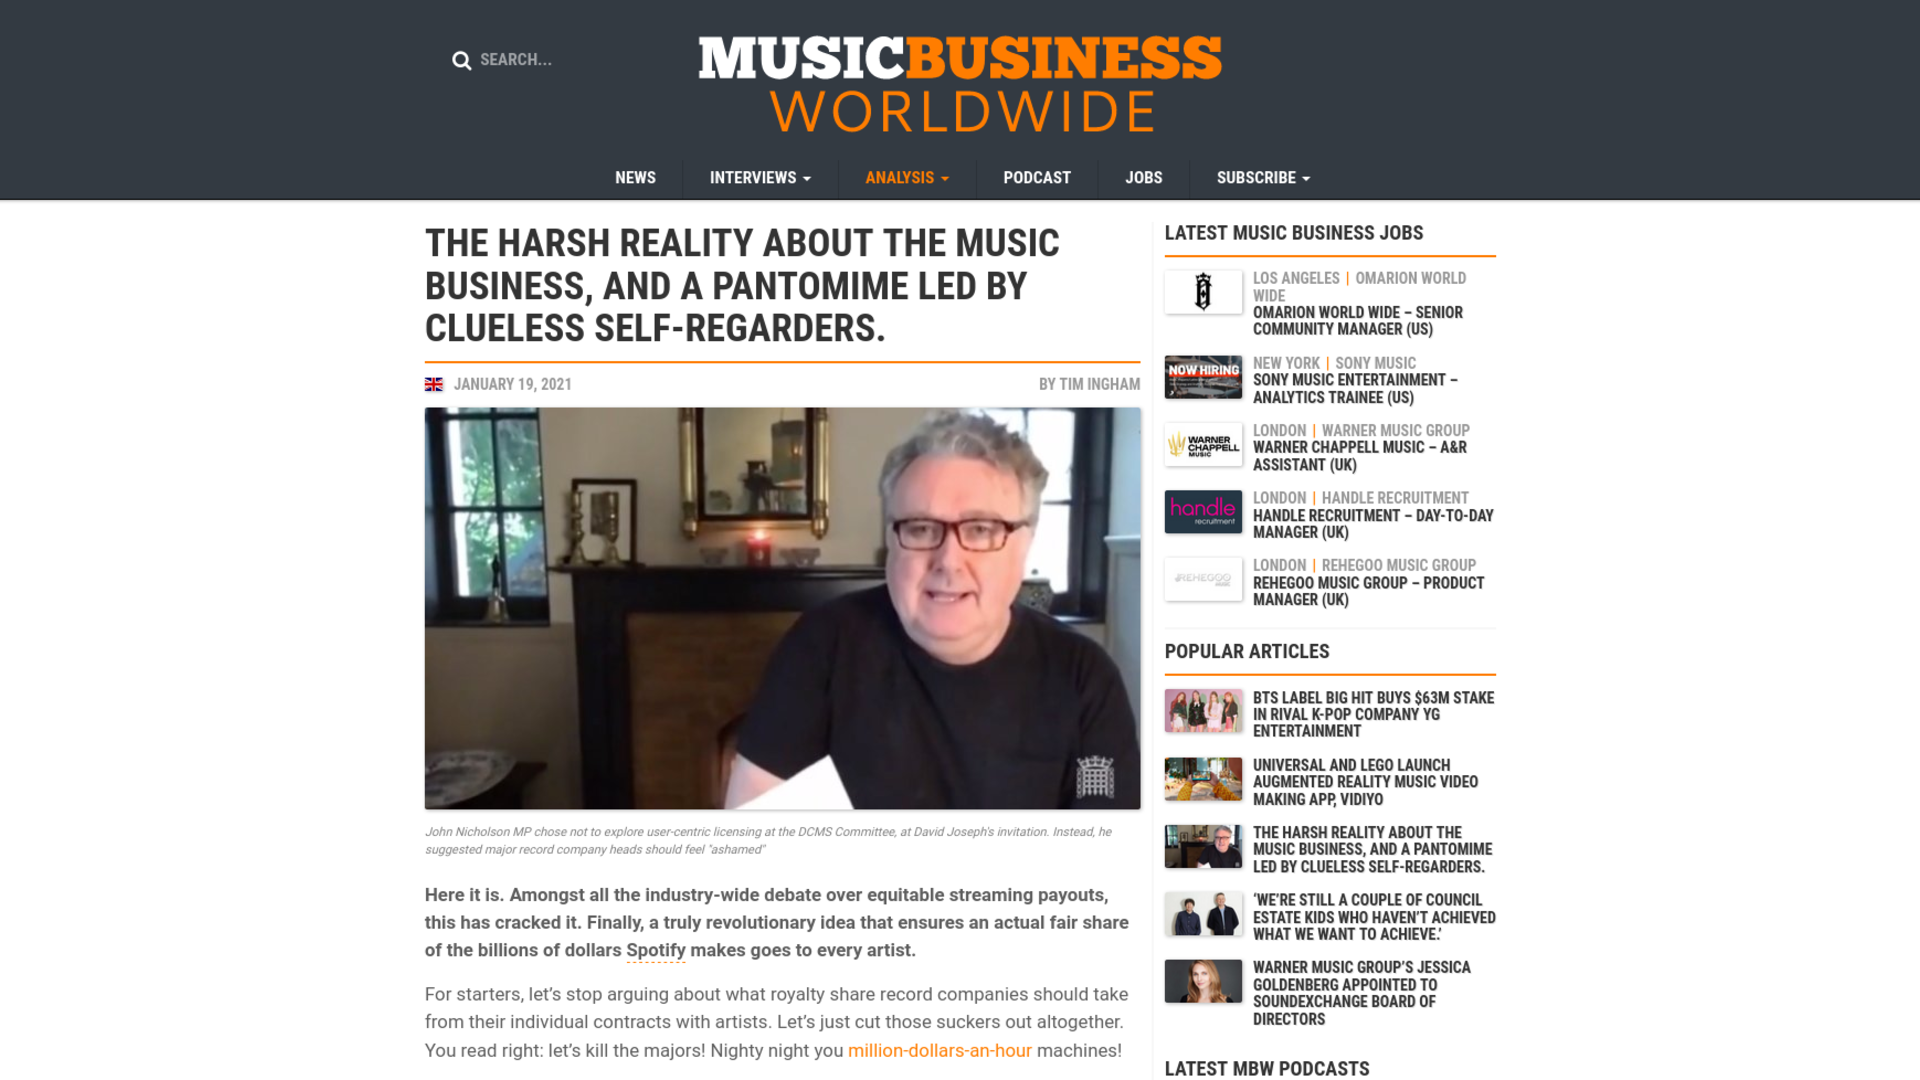 Fairness Rocks News The harsh reality about the music business, and a pantomime led by clueless self-regarders.